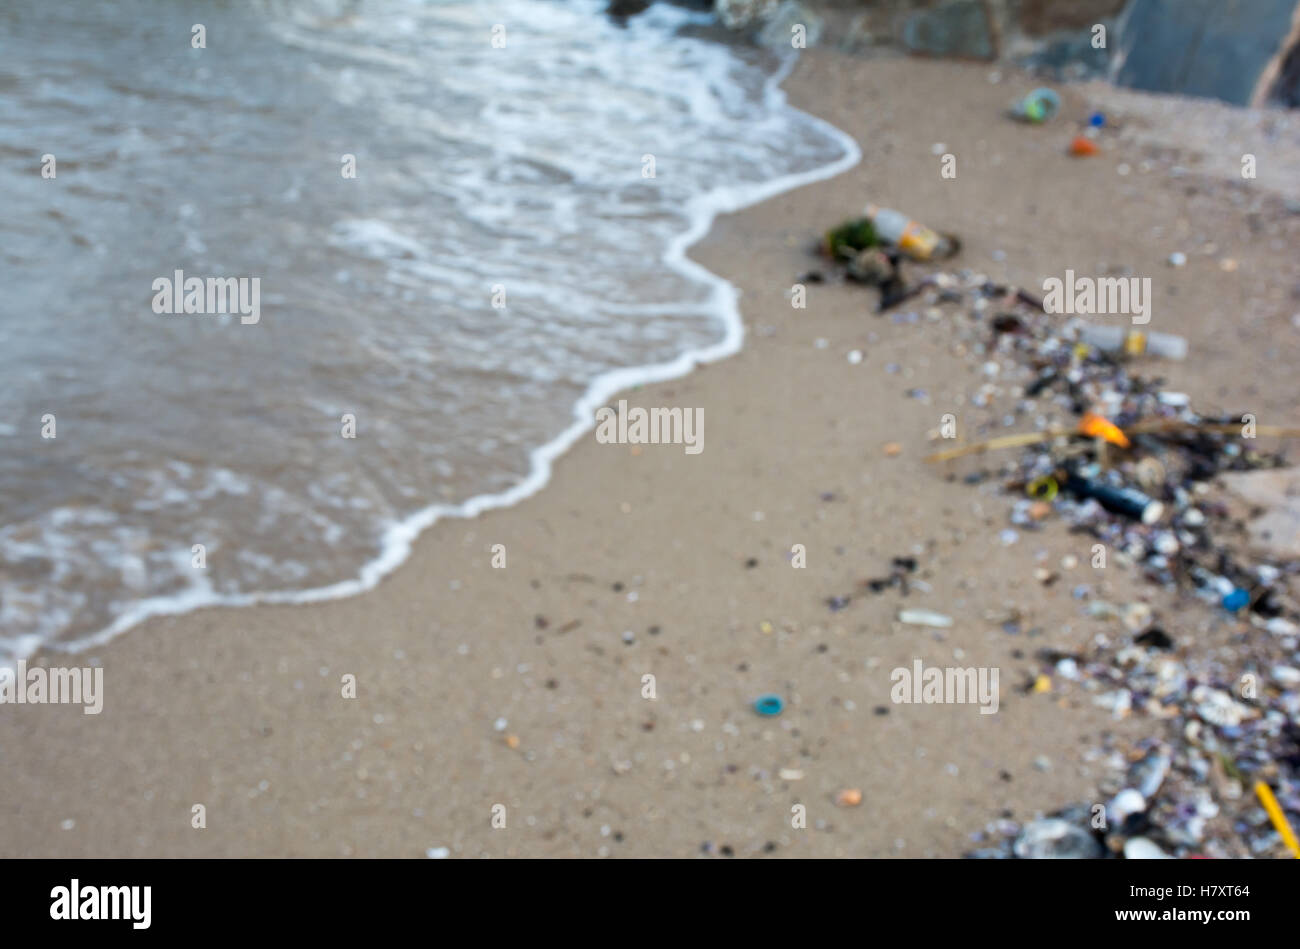 Pollution on the beach with blurred background - Stock Image